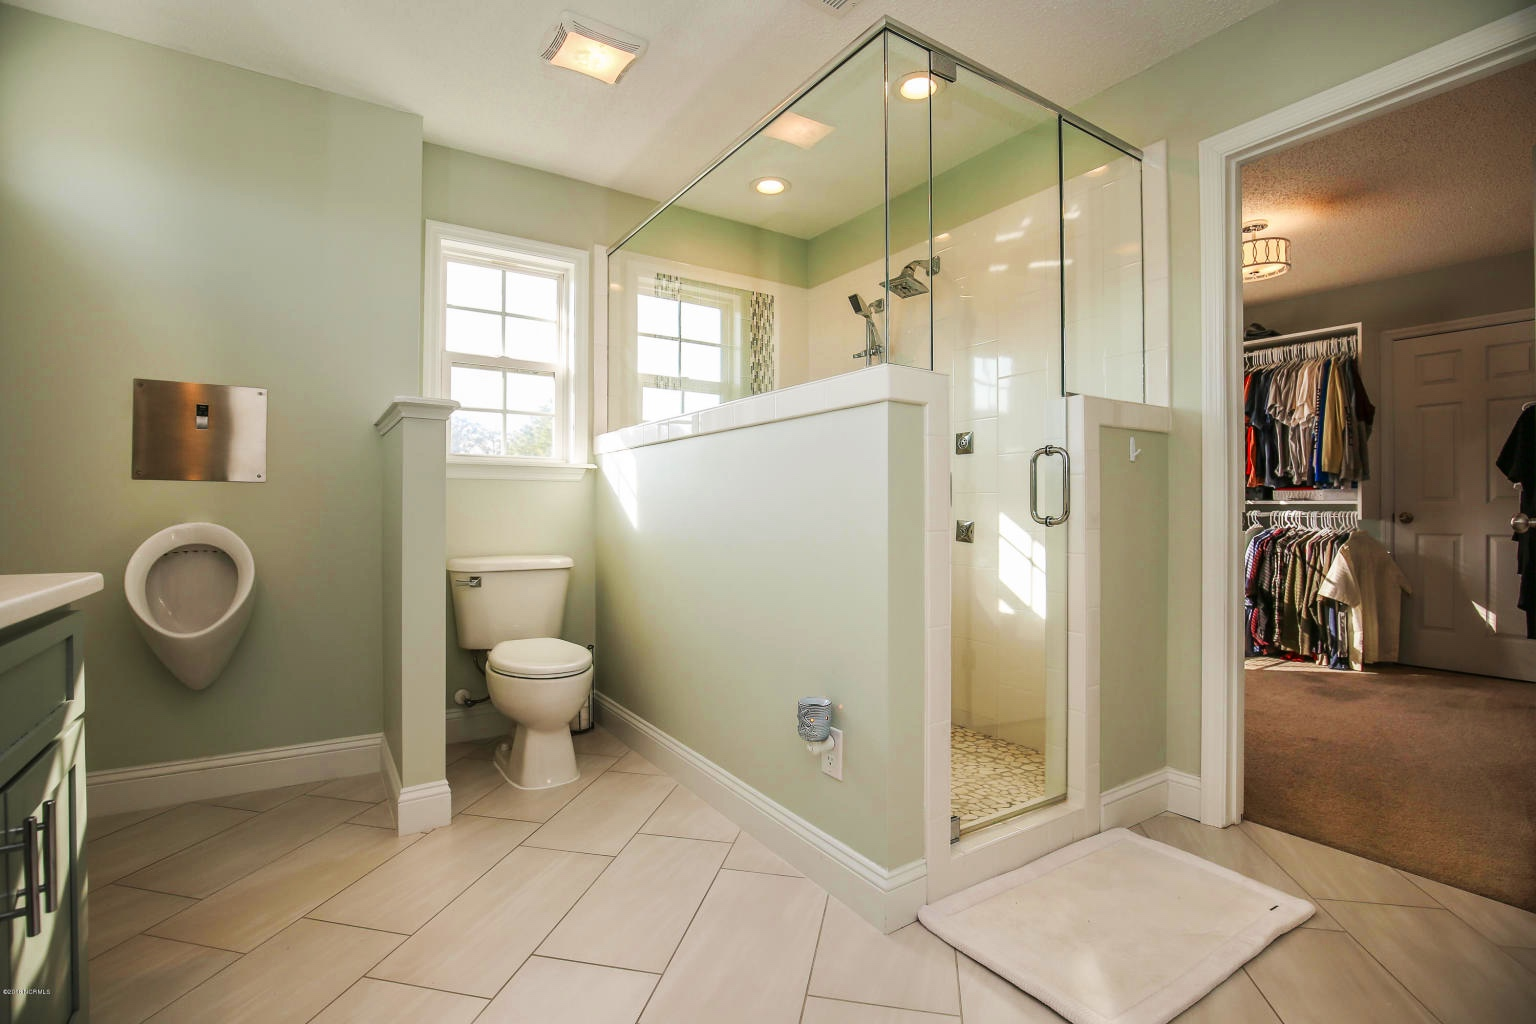 master bathroom with tiled shower and glass surround